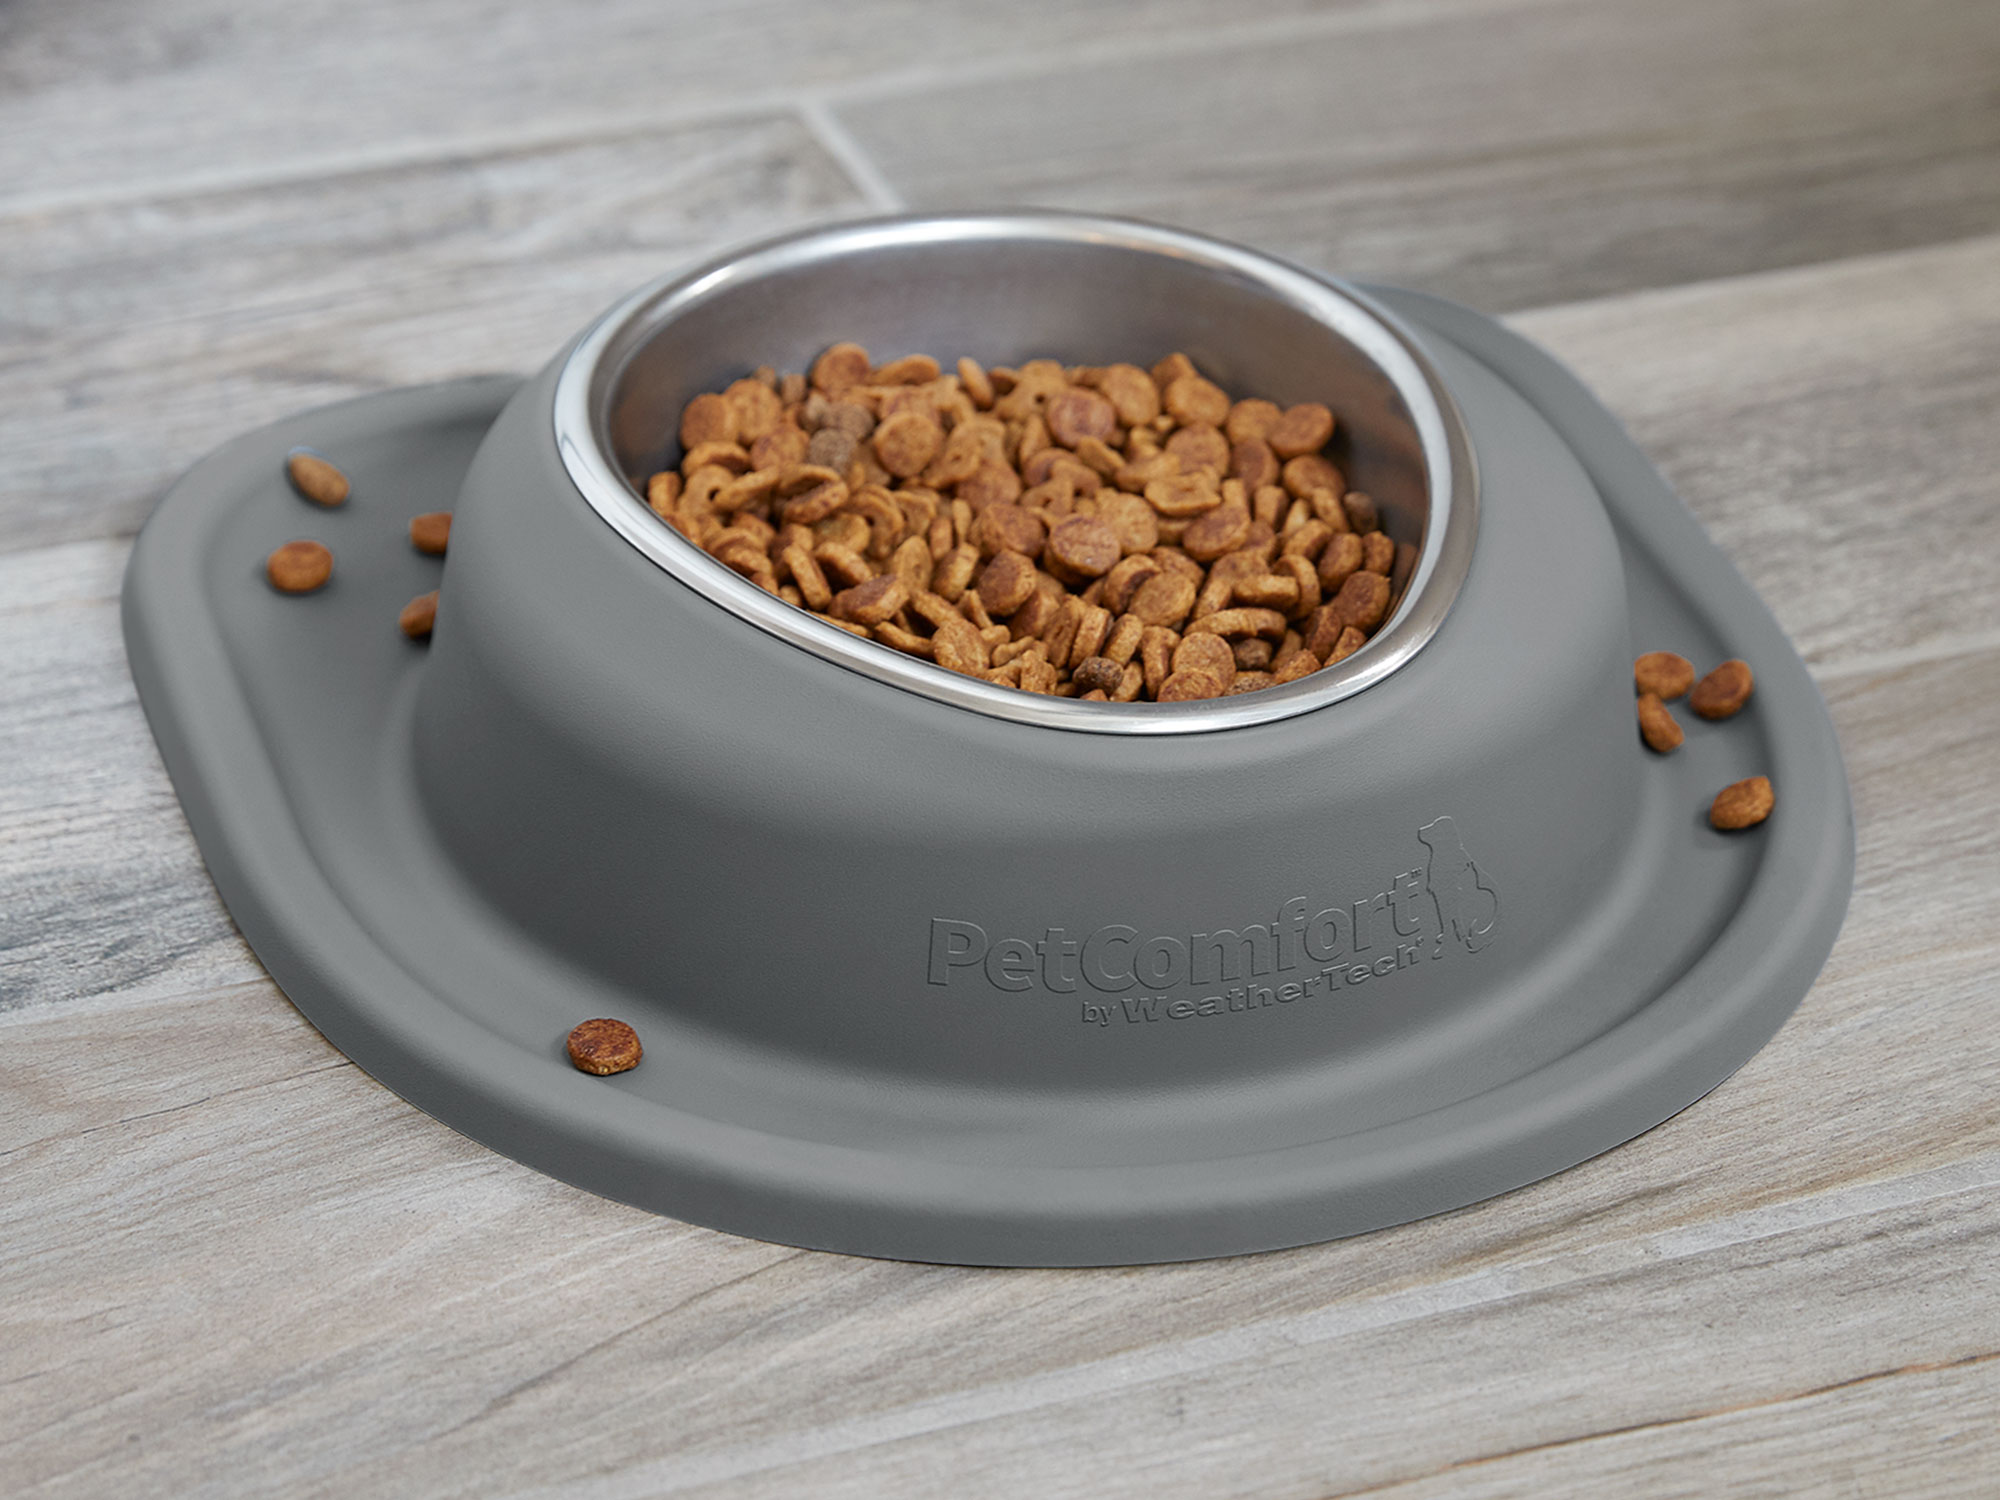 Bring your WeatherTech dog bowl with you outside or on vacation with this portable feeding or watering station.